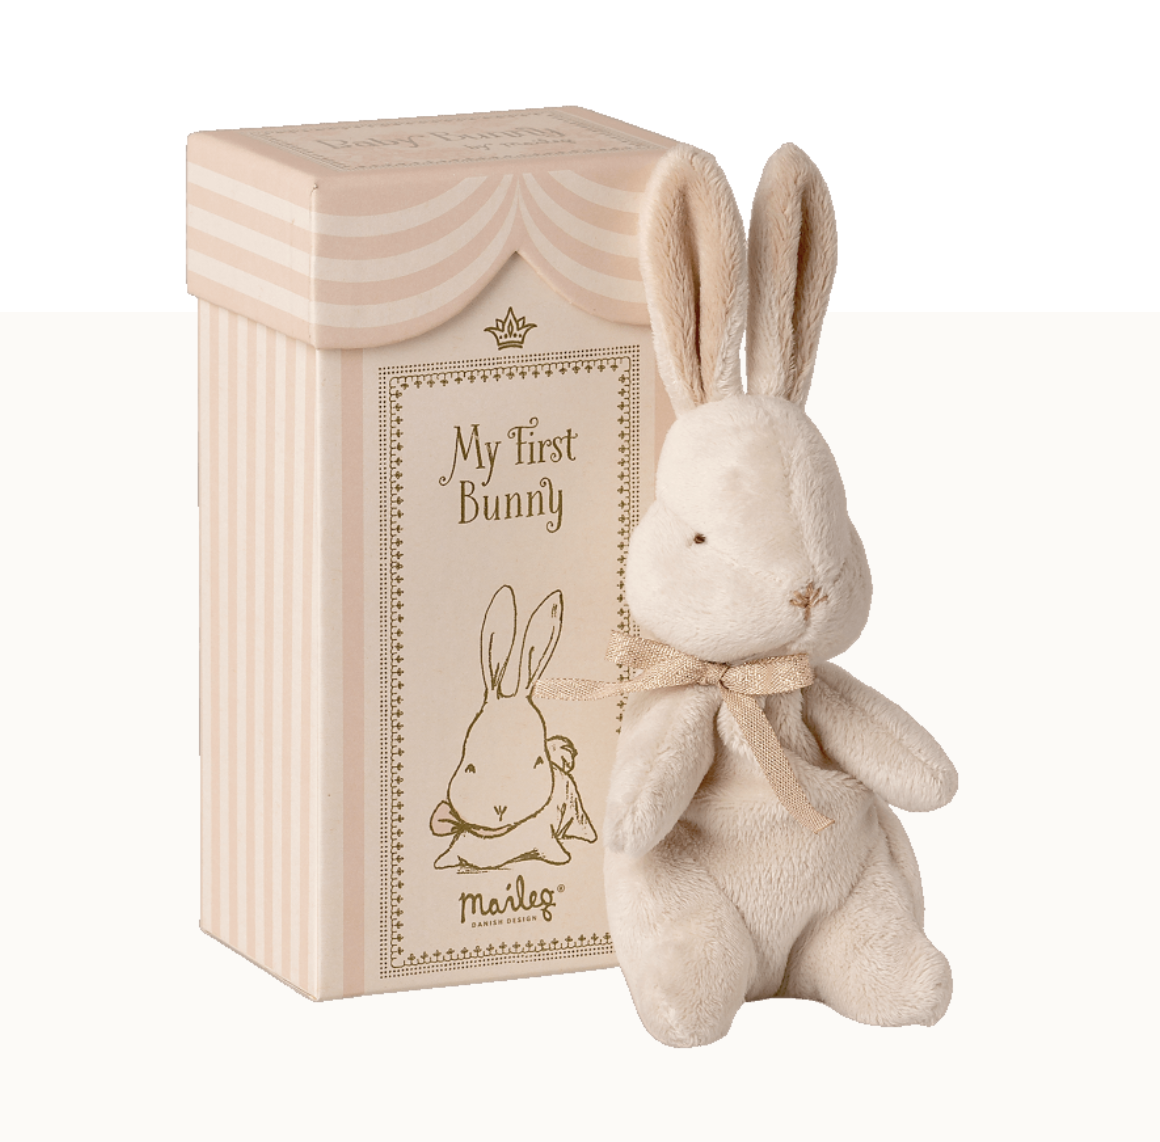 Maileg maileg my first bunny in box, dusty rose